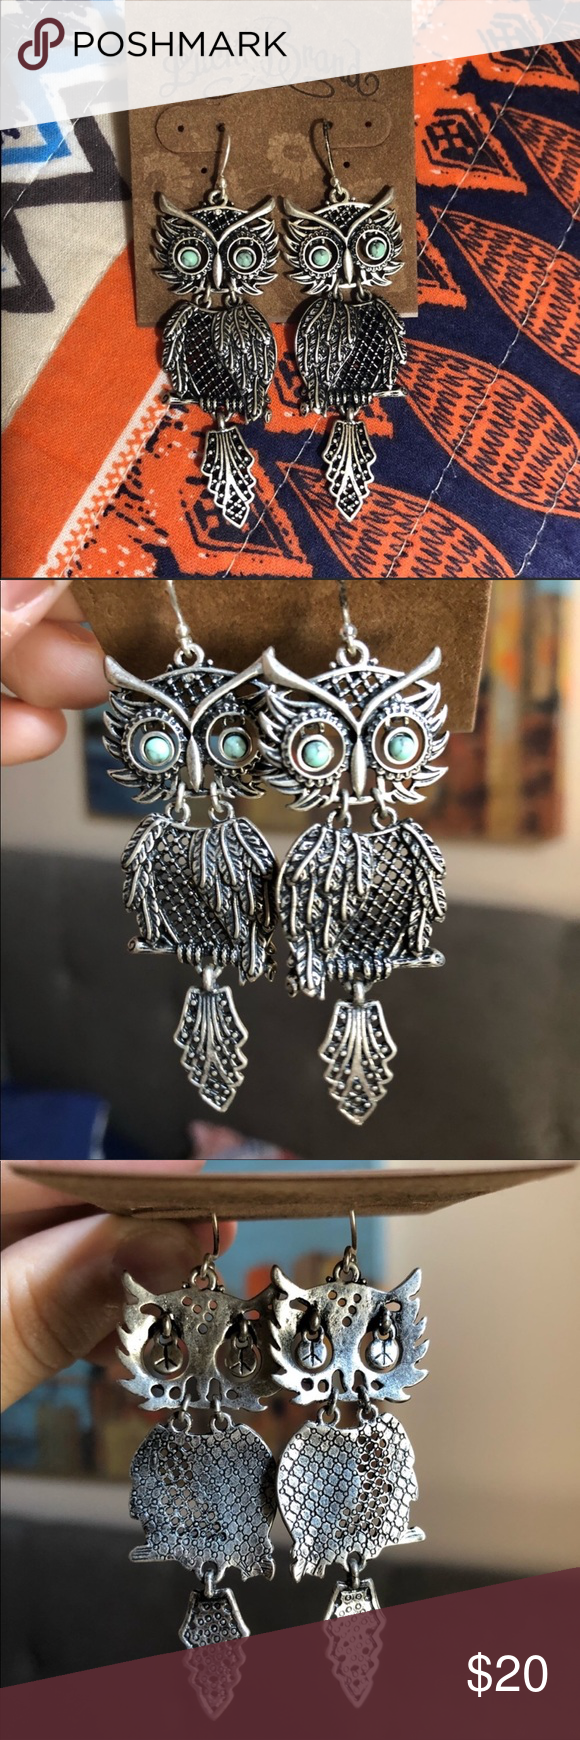 Lucky Brand Owl Earrings These